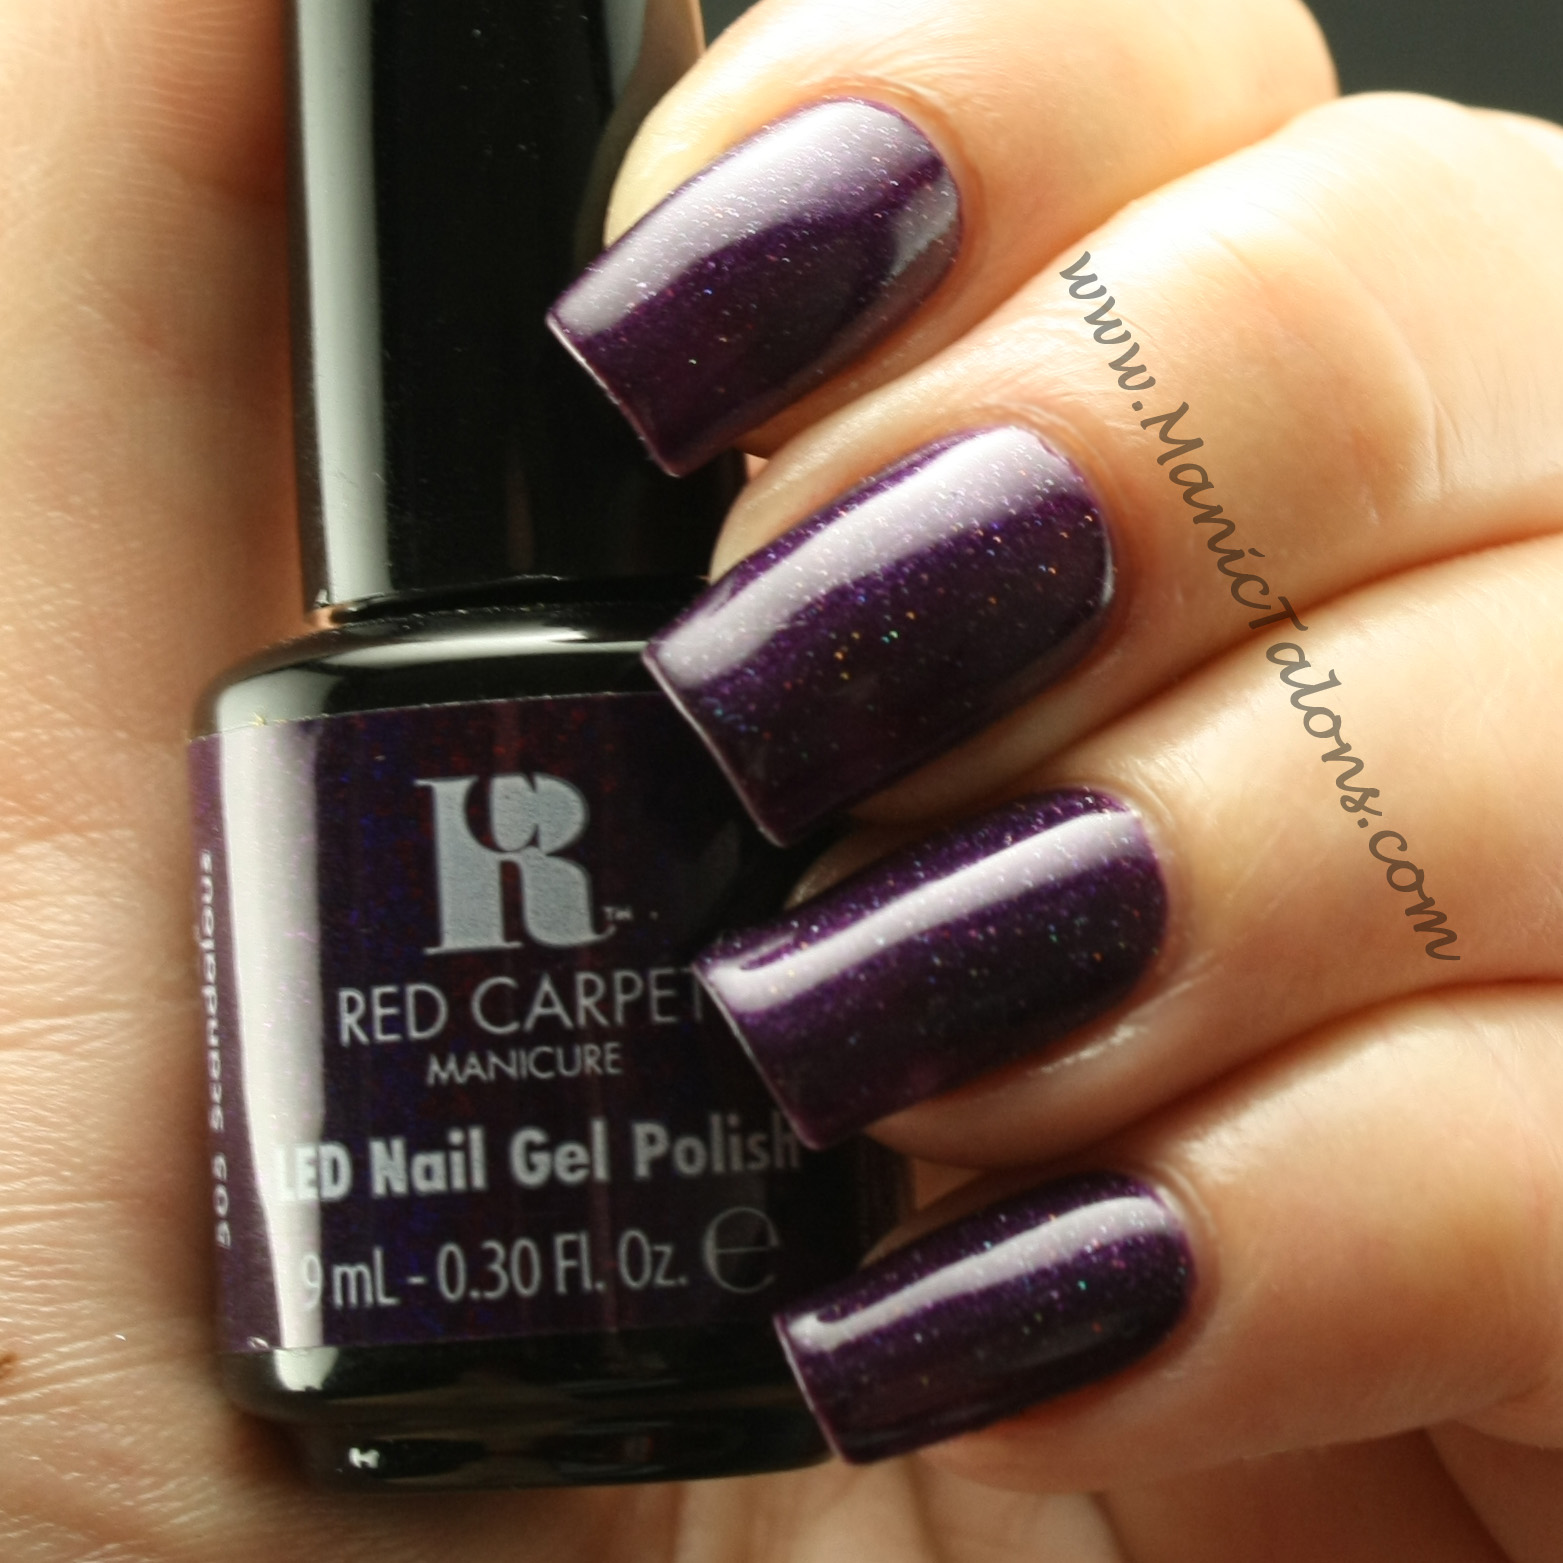 Manic Talons Nail Design: Gorgeous Glittery Finishes from Red Carpet ...